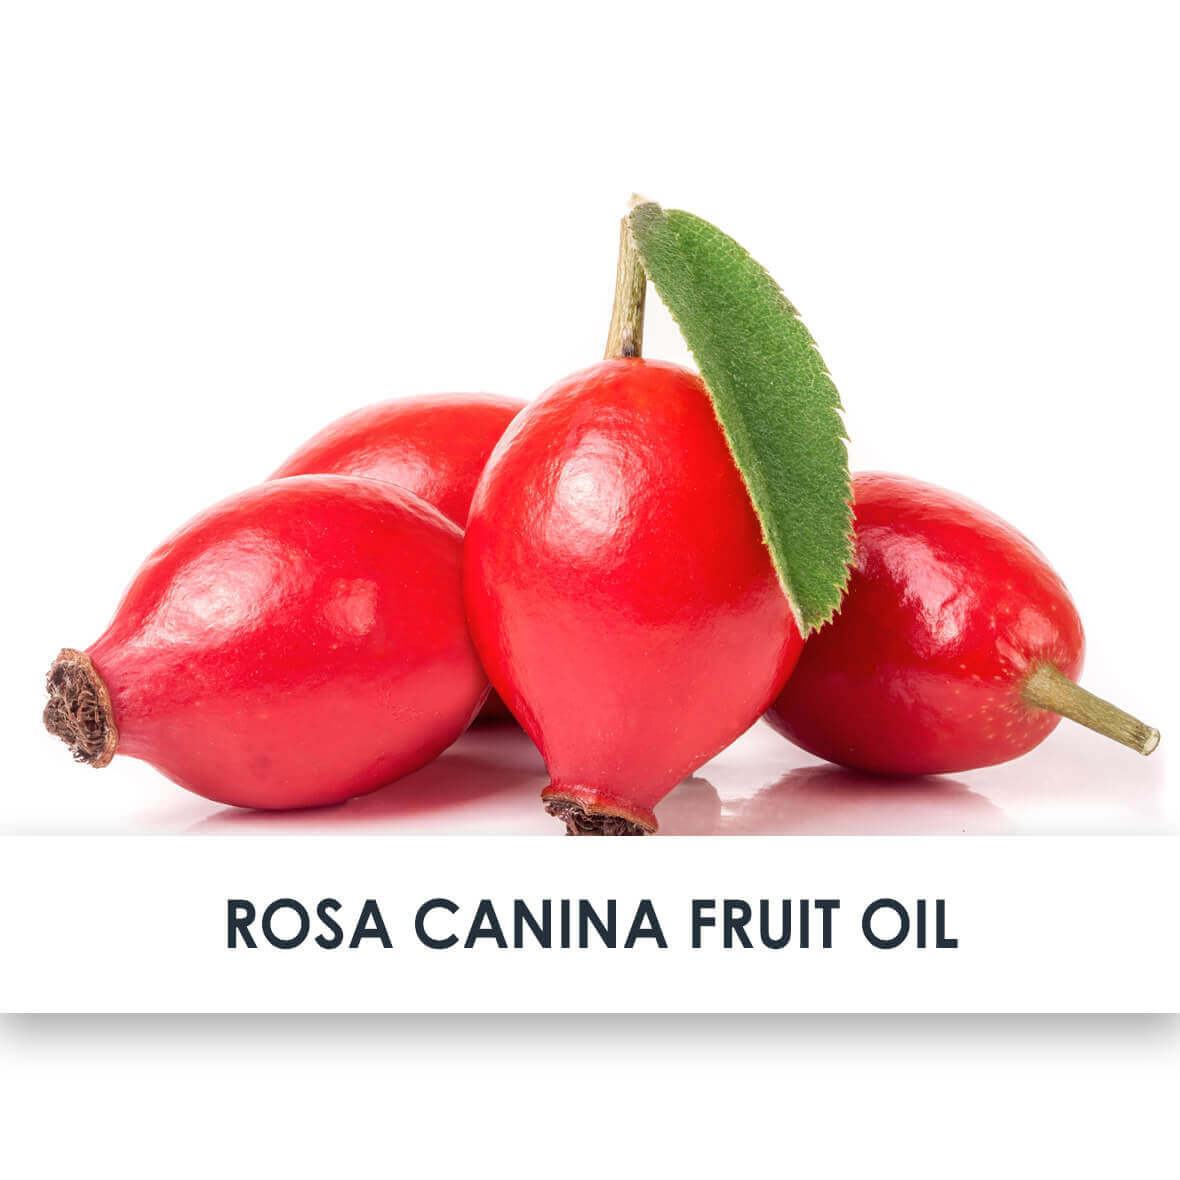 Rosa Canina Fruit Oil Skincare Benefits